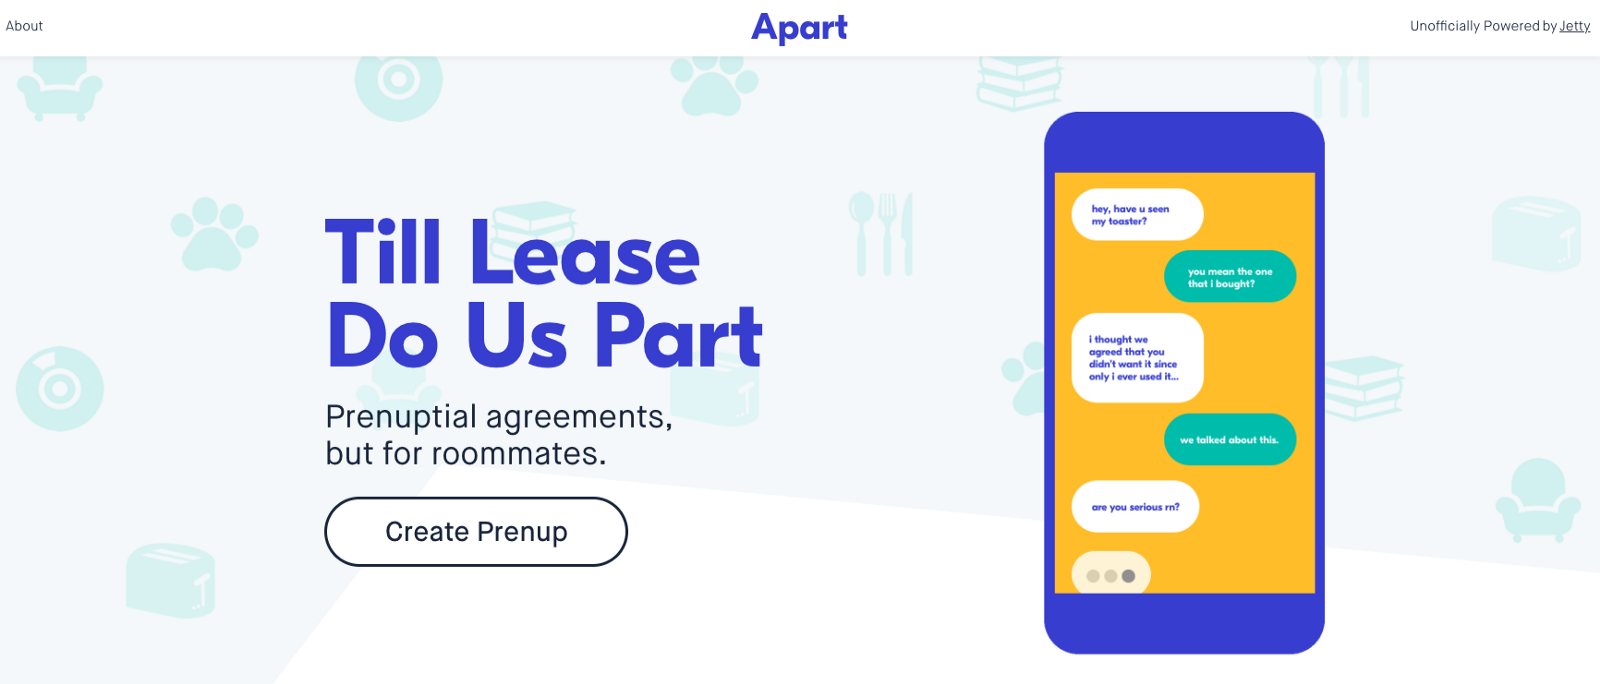 Meet Apart A Prenuptial Agreement But For Roommates